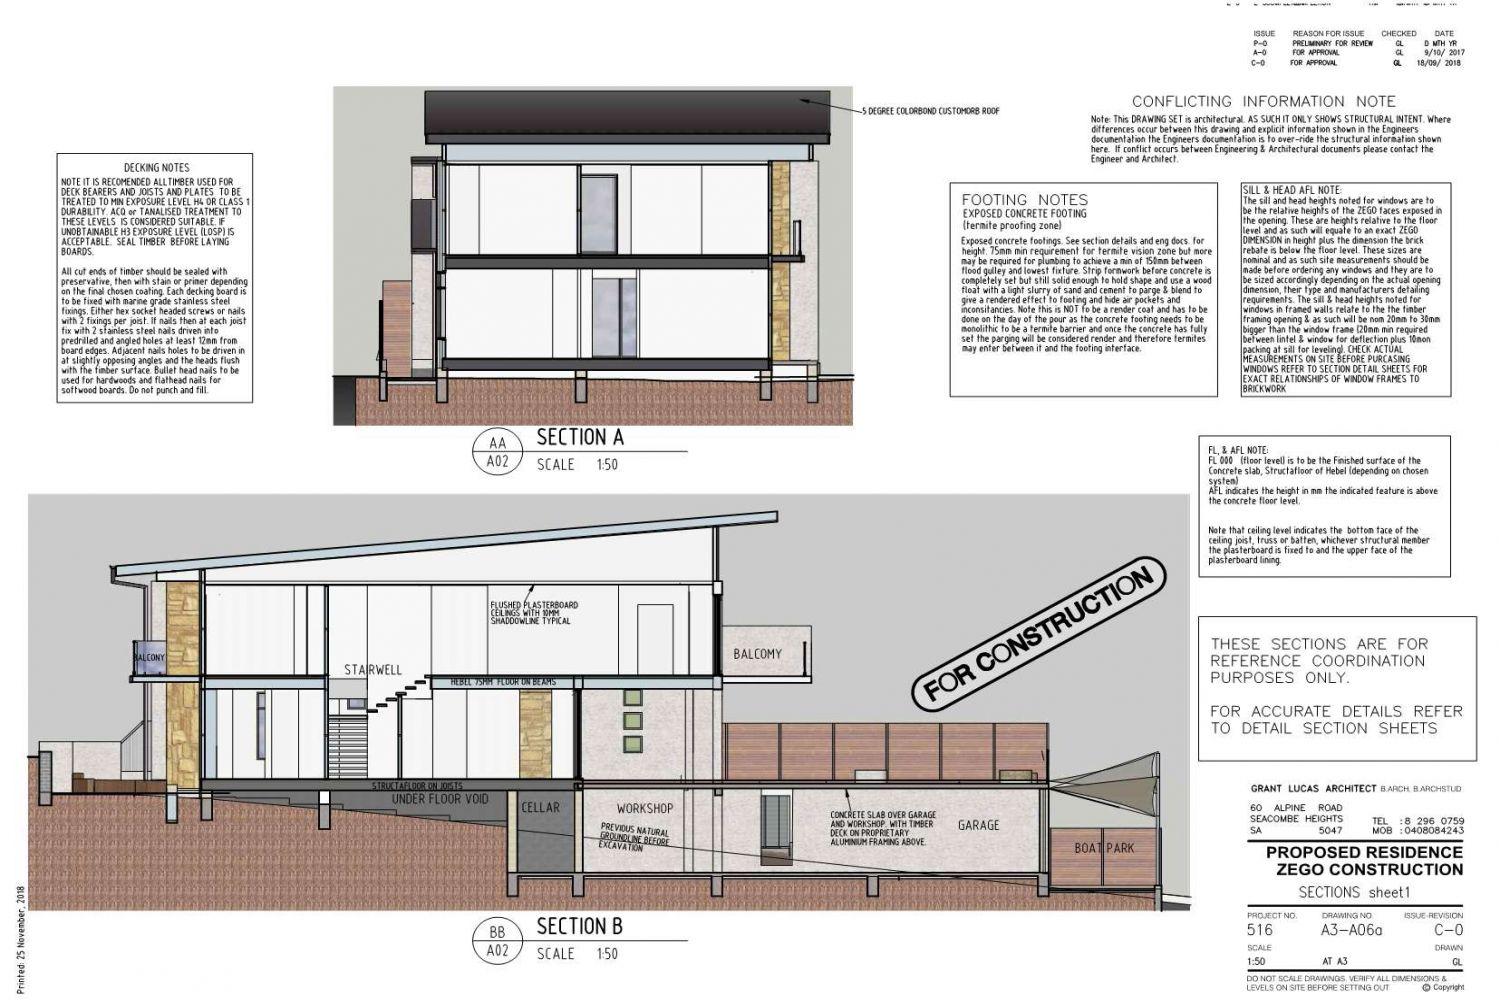 Owner Builder Zego Construction  2 storey Home at Port Noarlunga: Working Drawings Sheet 14:  Section key